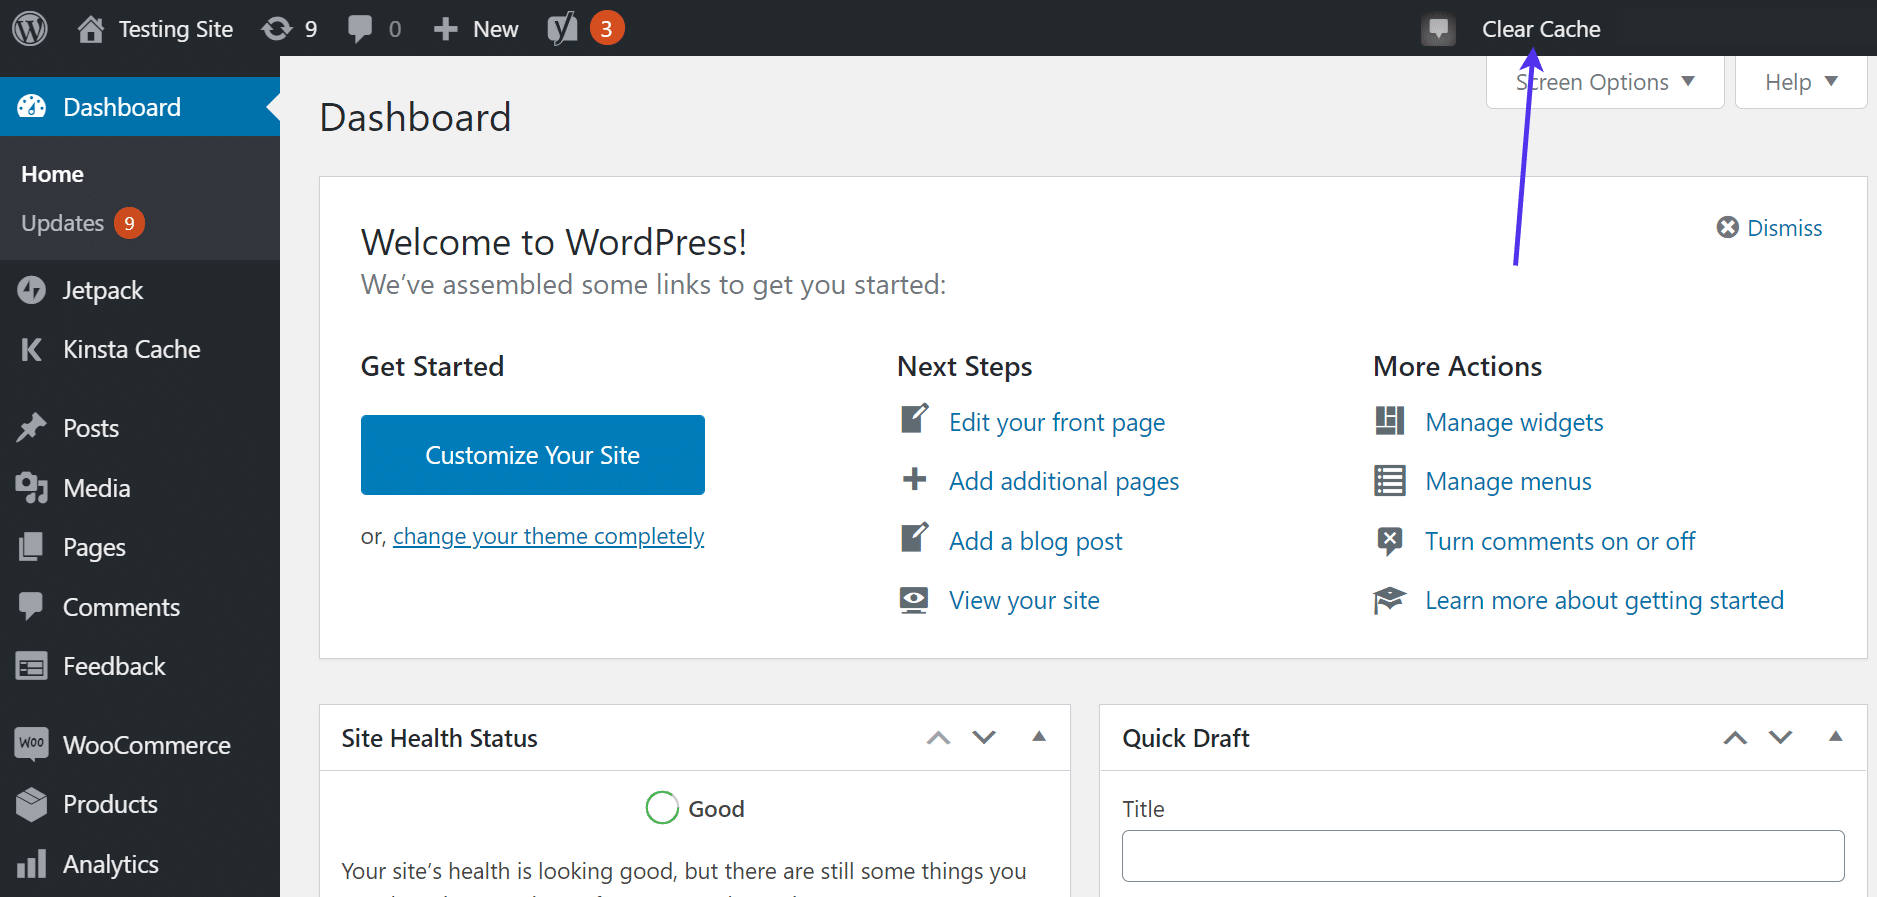 'Clear Cache' button in WordPress dashboard